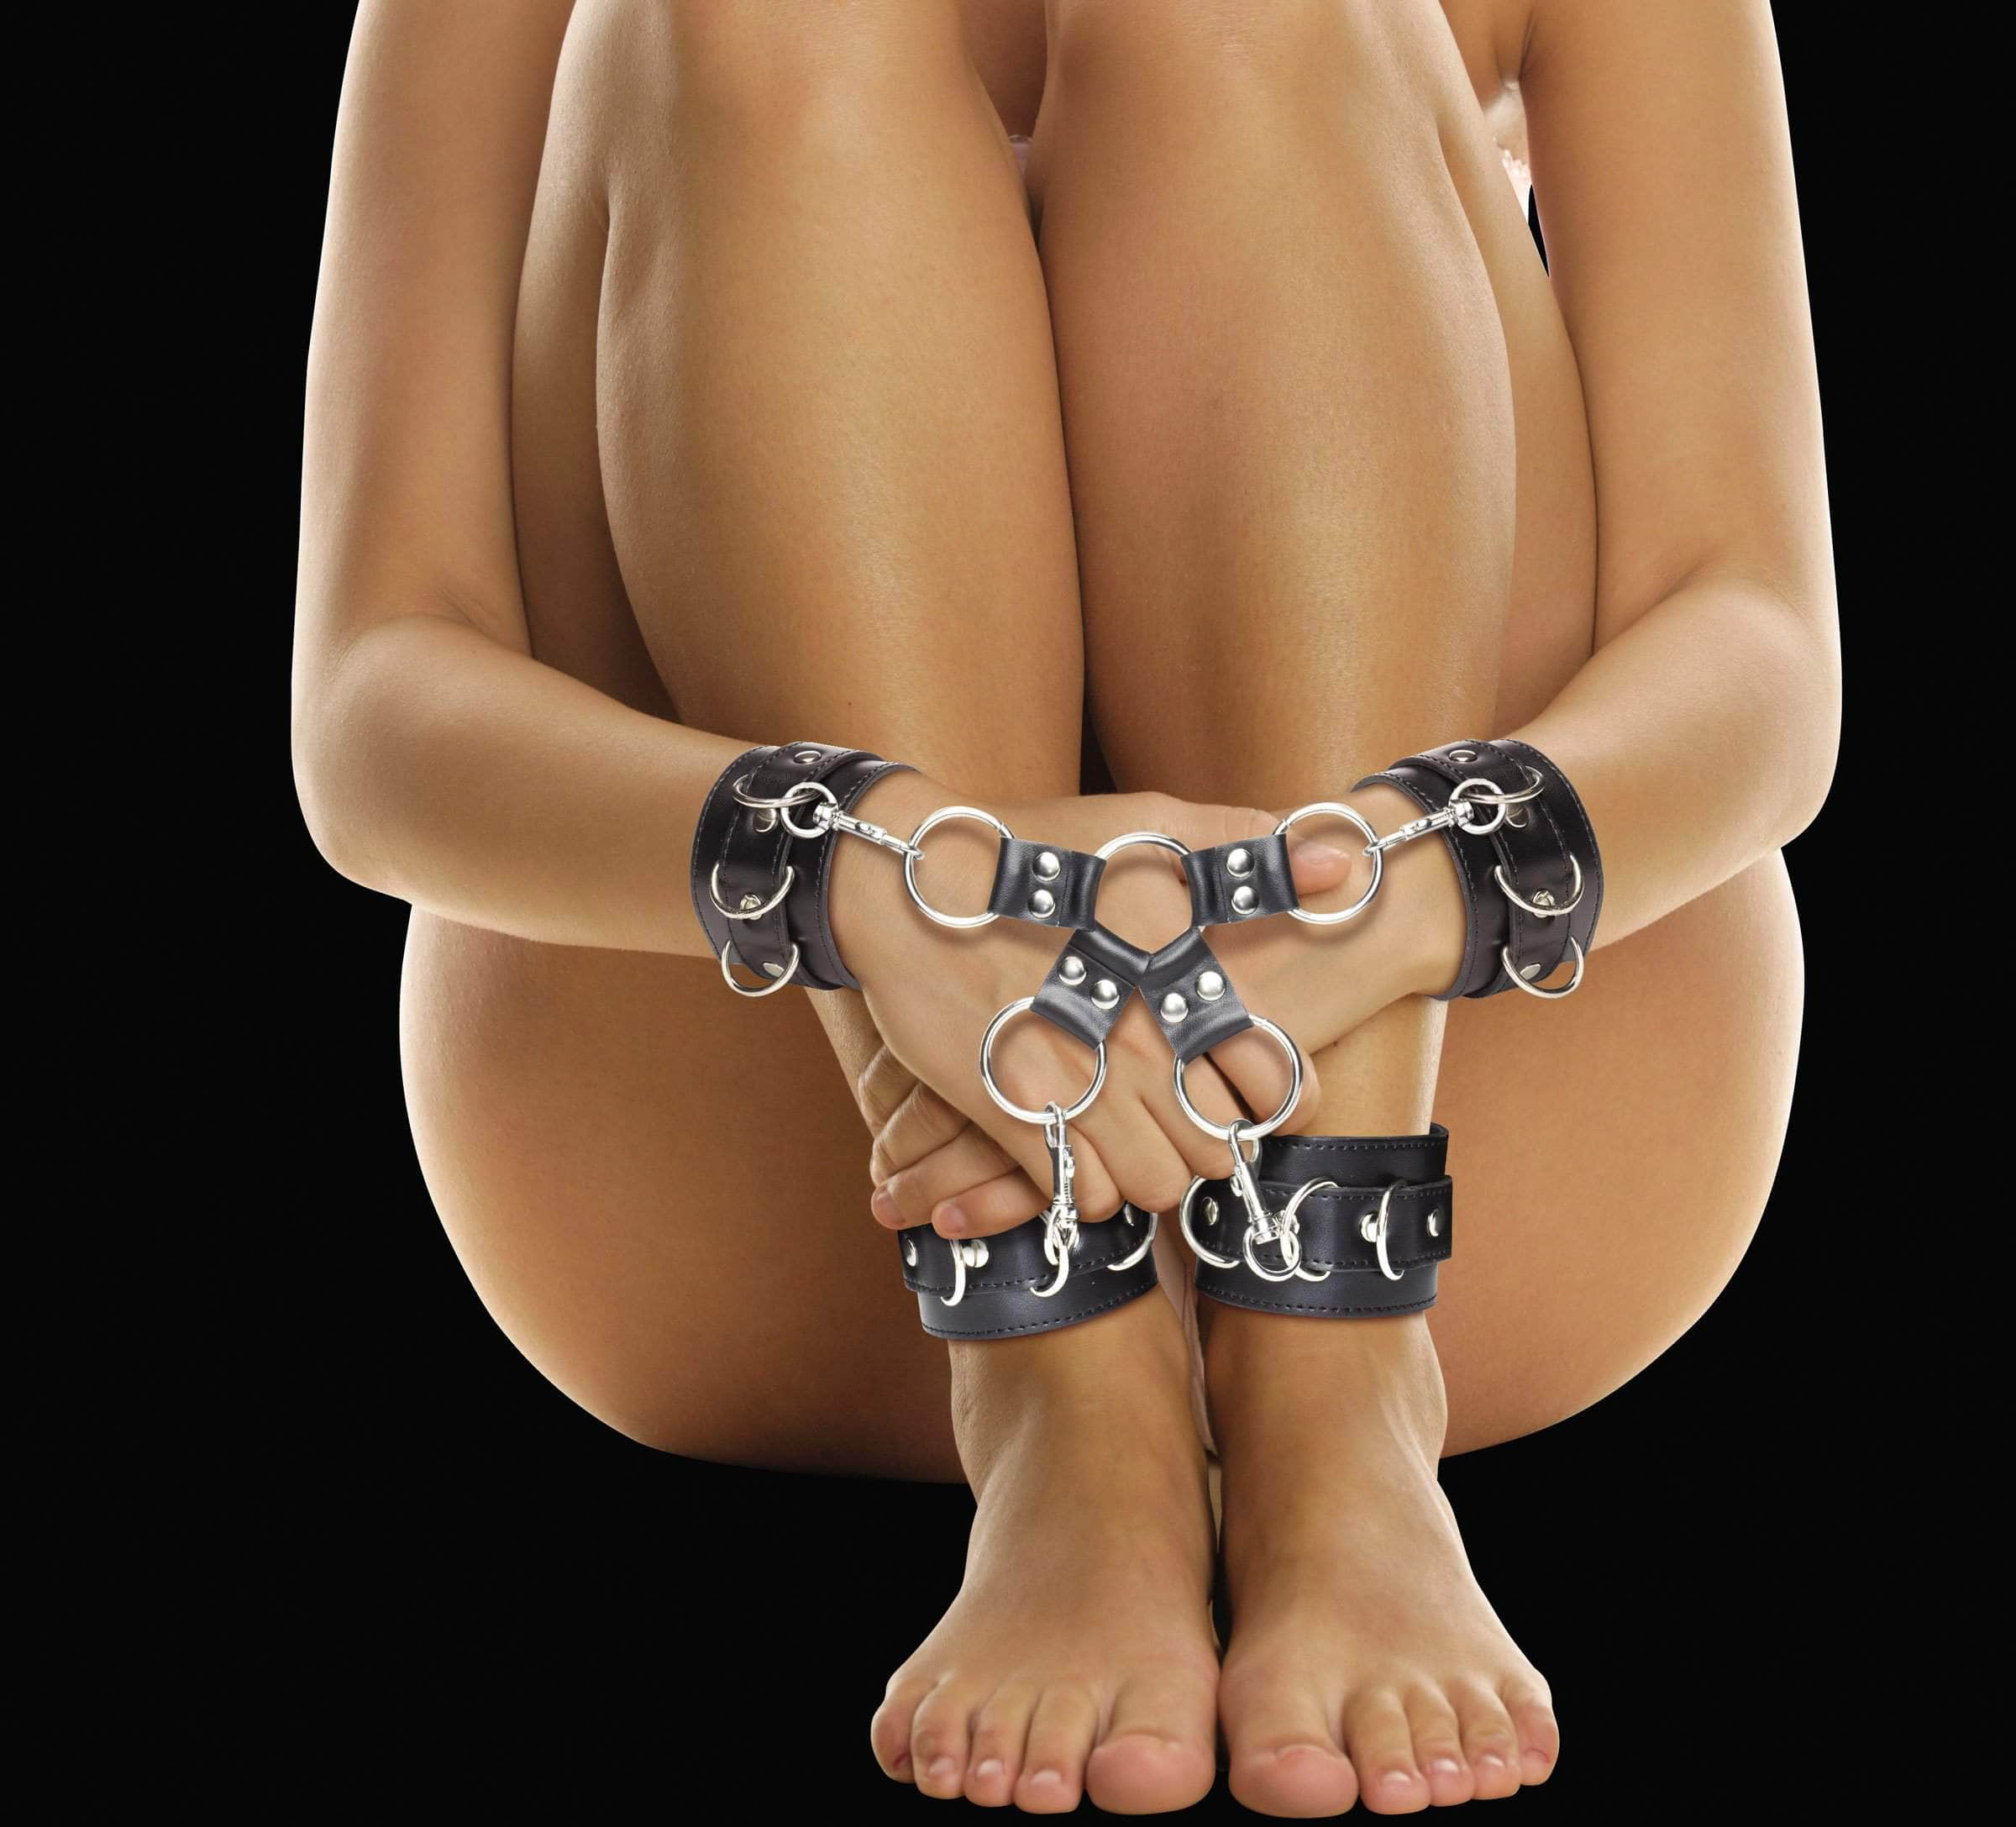 Ouch! Leather Hand And Leg Cuffs